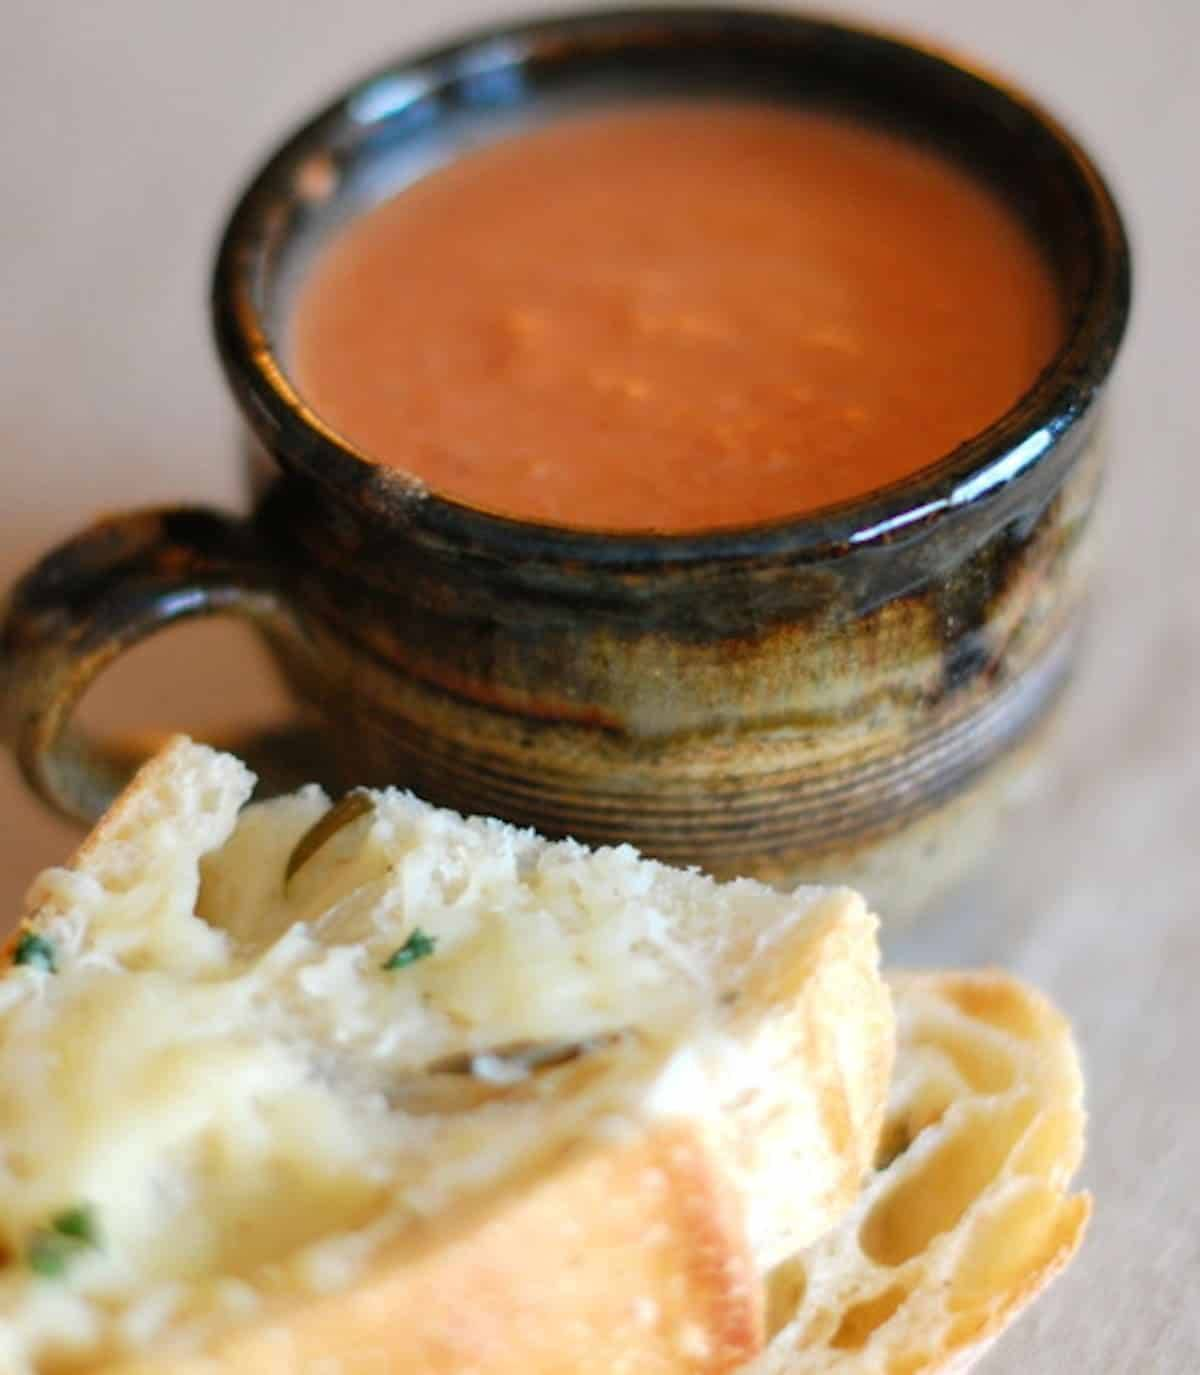 Creamy tomato balsamic soup in a mug with pieces of bread.